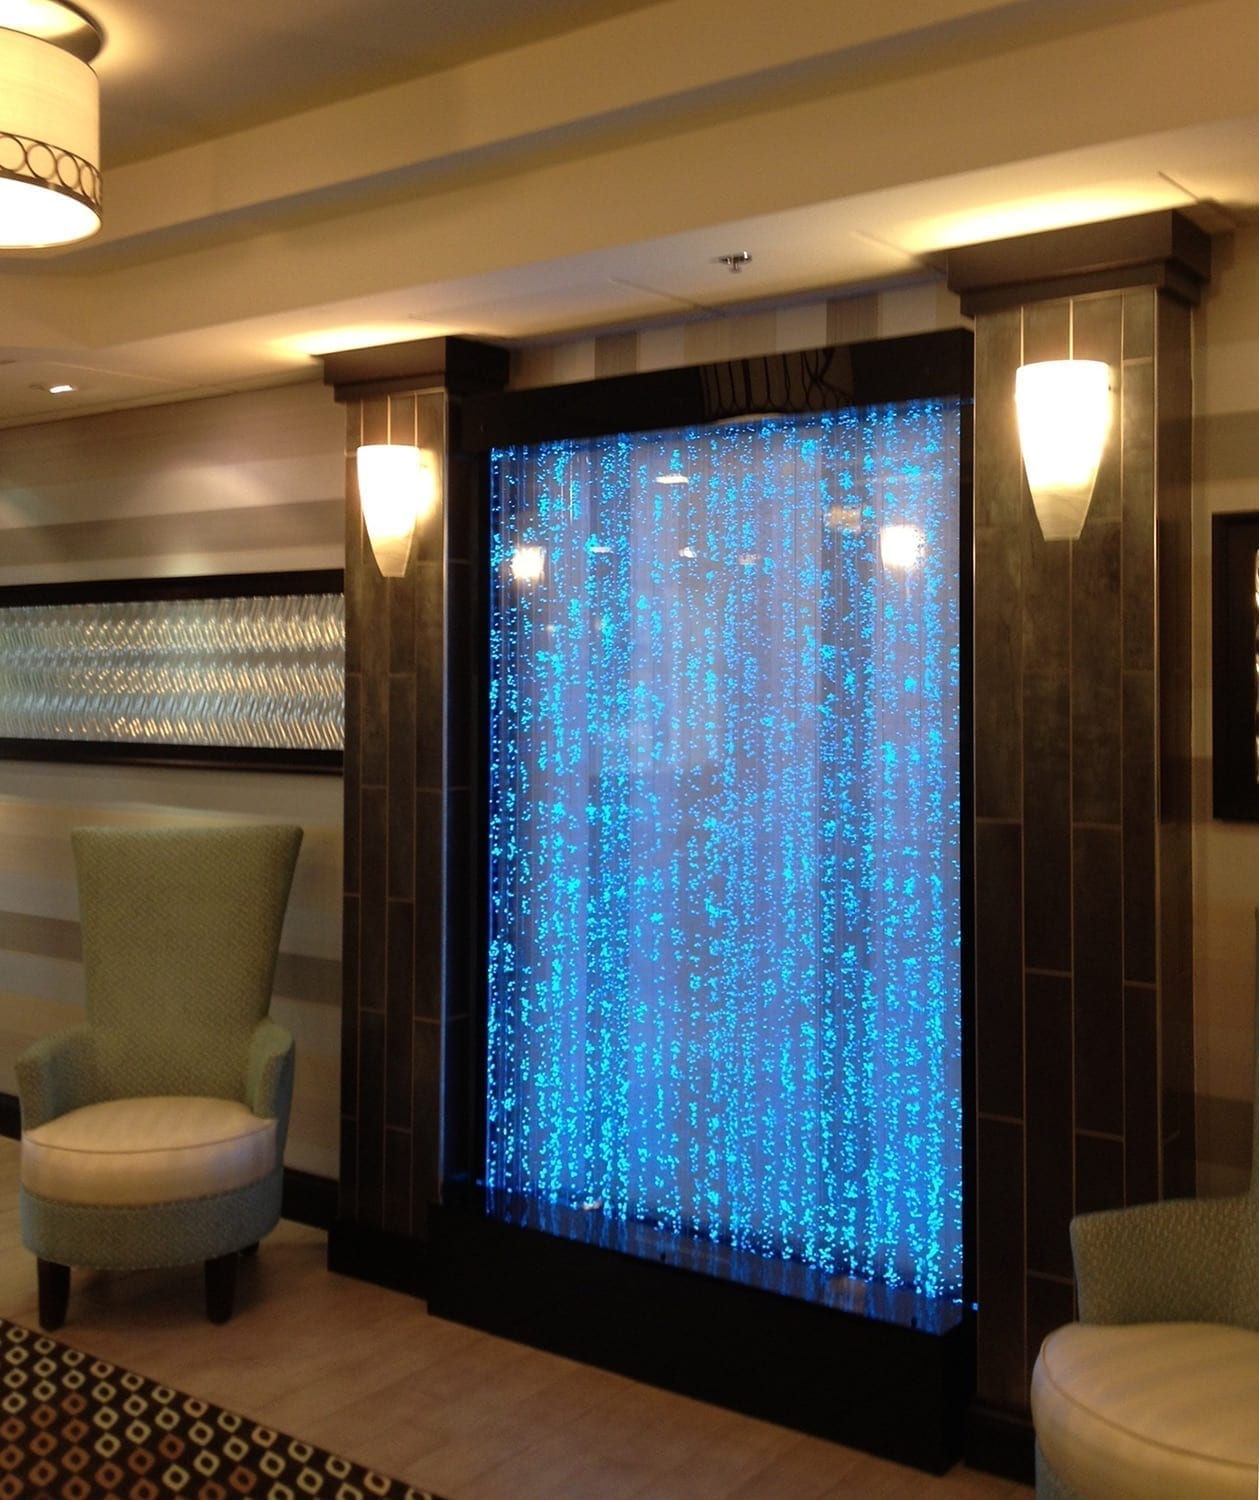 Bubble Wall Water Features in Hampton Inn Columbus OH bubble water wall